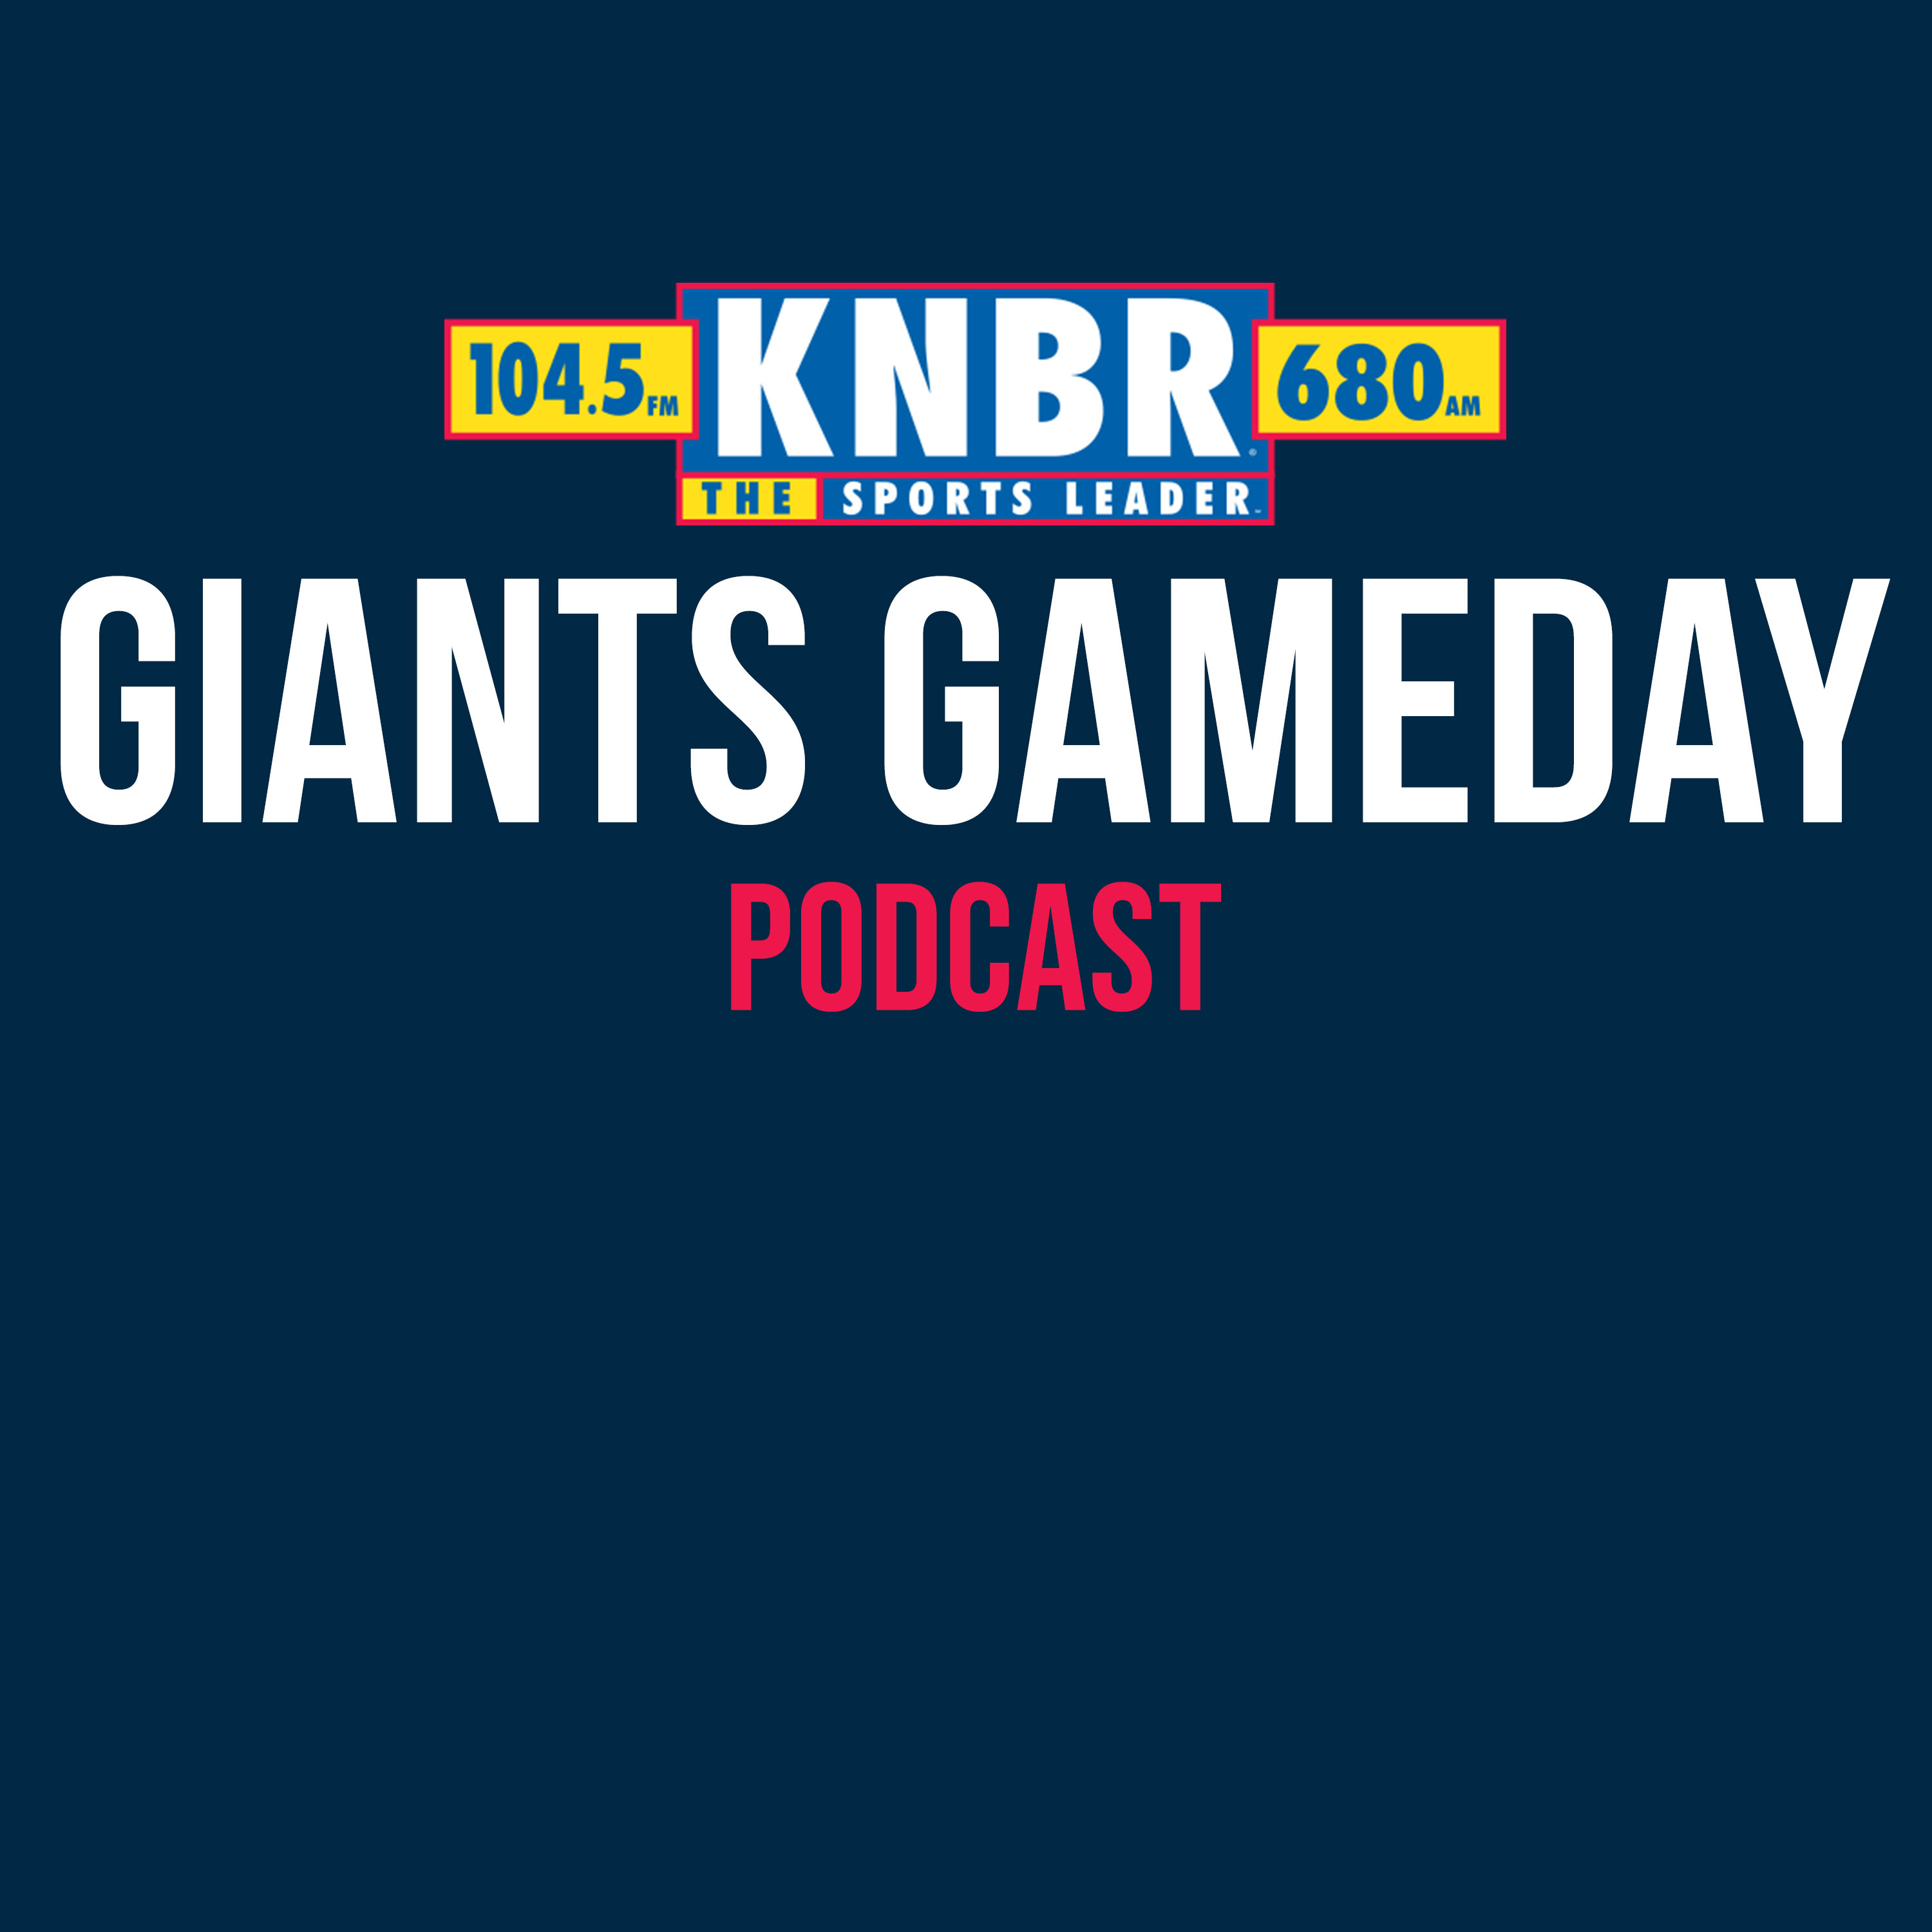 9-15 The Bruce Bochy Show